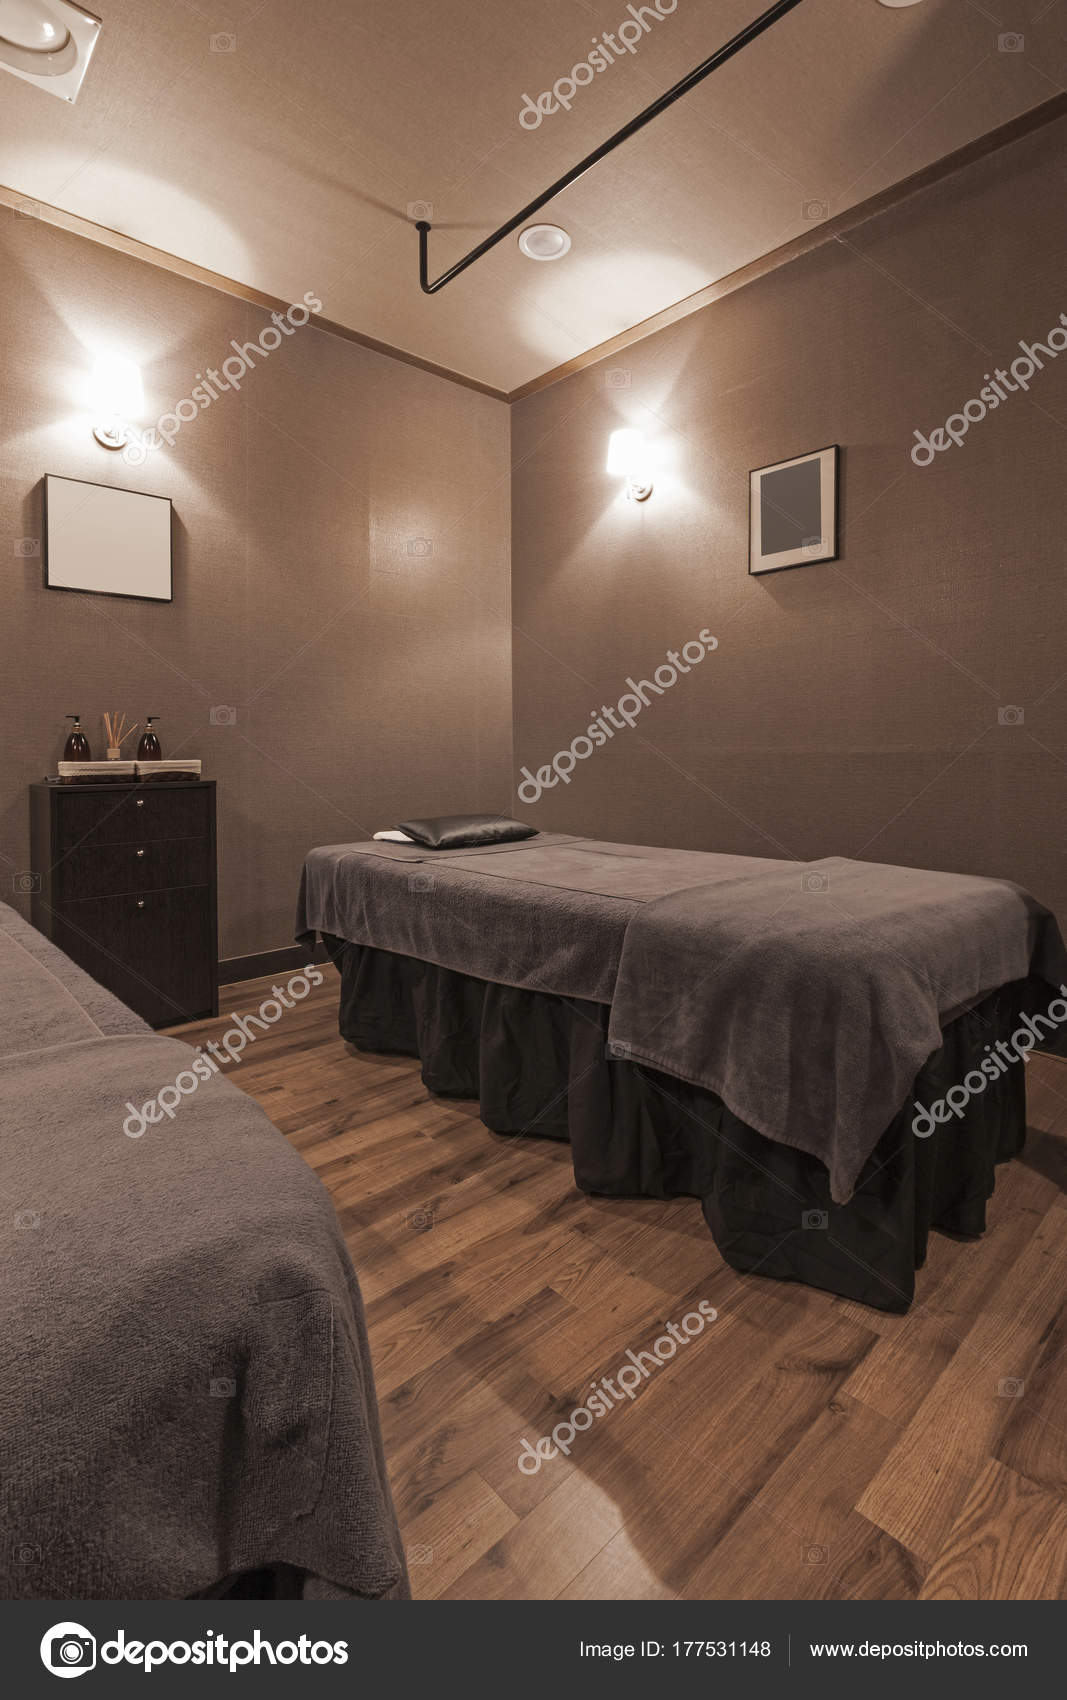 Massageraum luxus  Innere Der Massageraum — Stockfoto © earlyspring #177531148